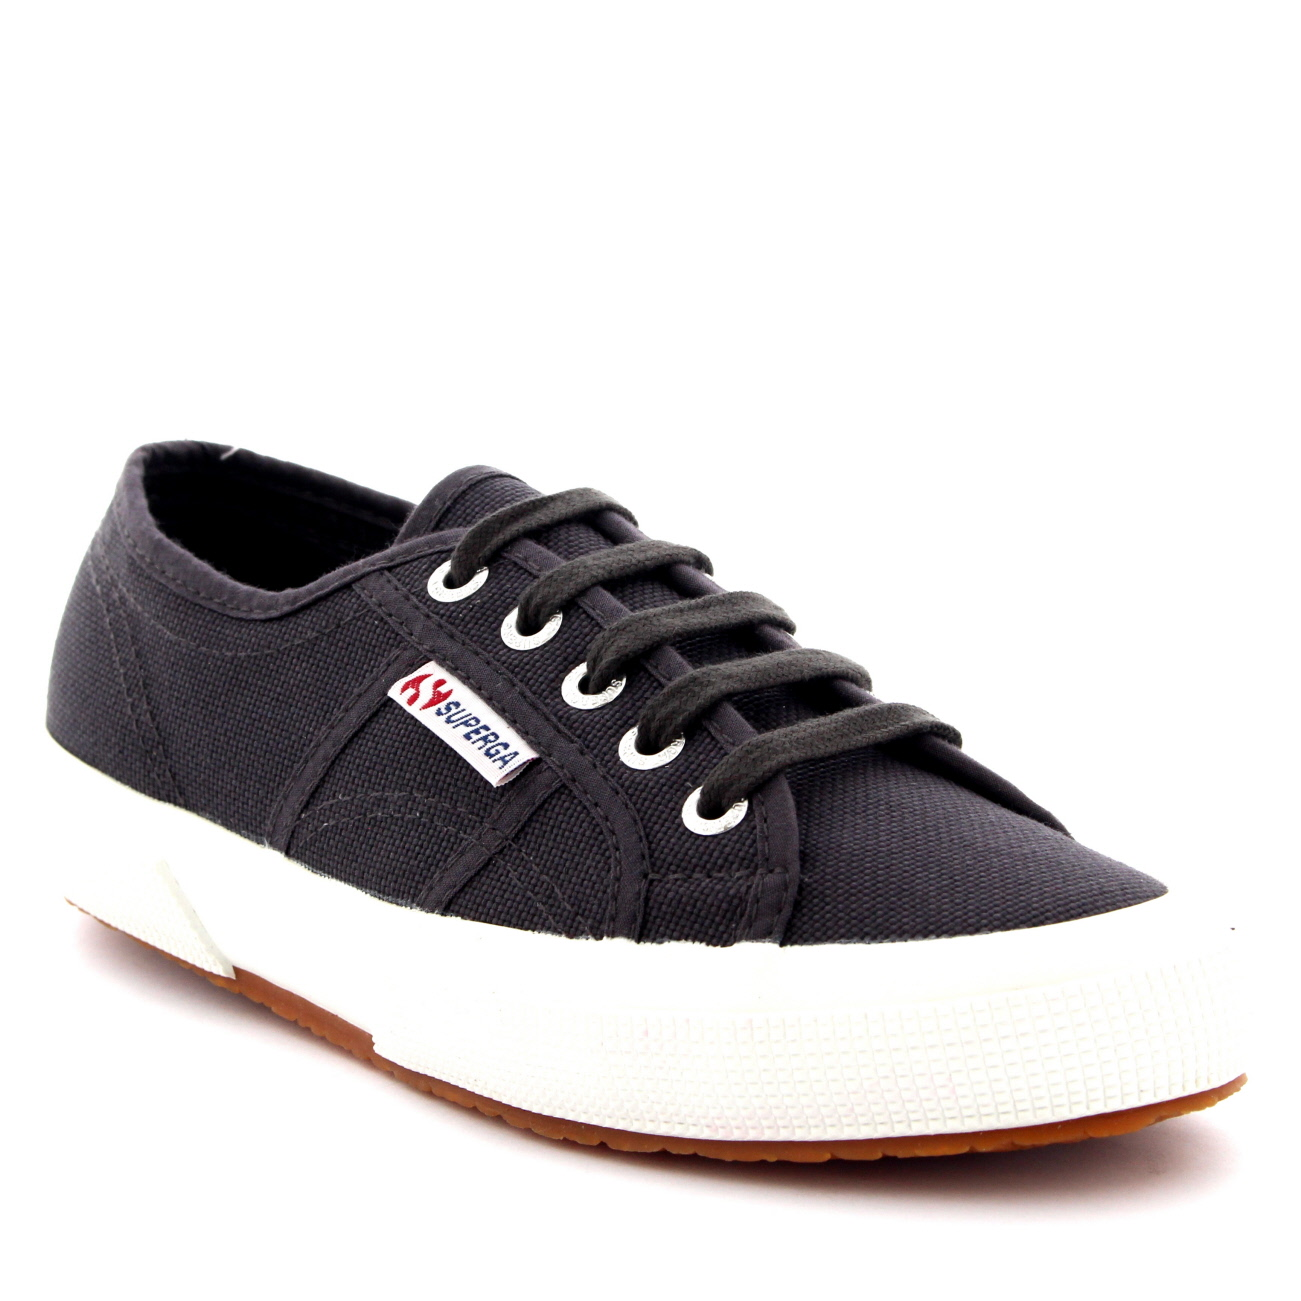 getdangero.ga: mens plimsolls. Gift Certificates/Cards International Hot New Releases Best Sellers Today's Deals Sell Your Stuff Search results. of results for